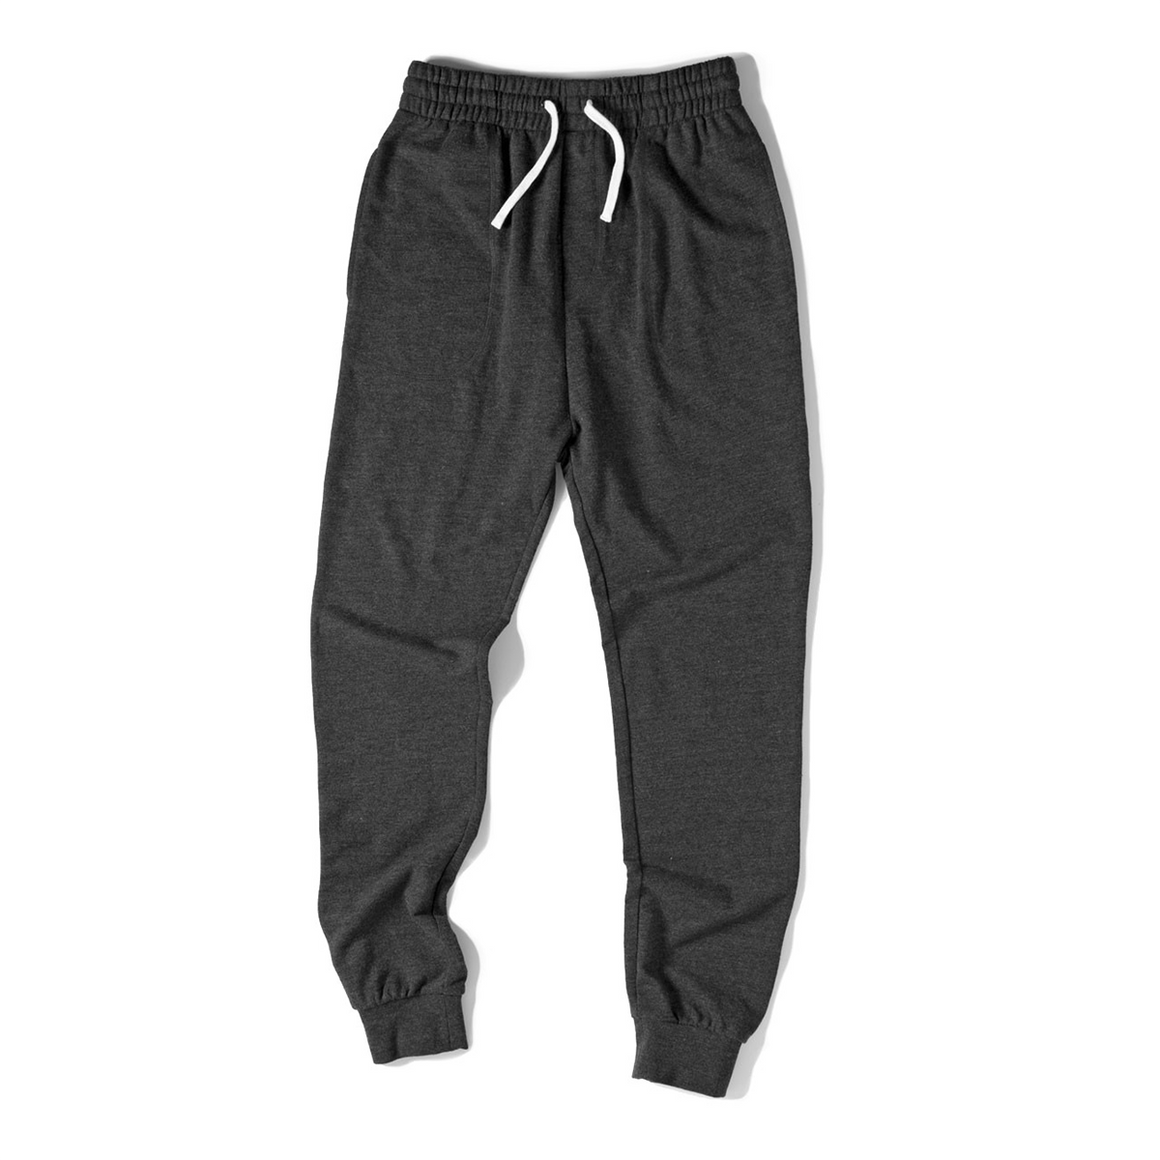 Fifty5 Clothing Premium Track Pant